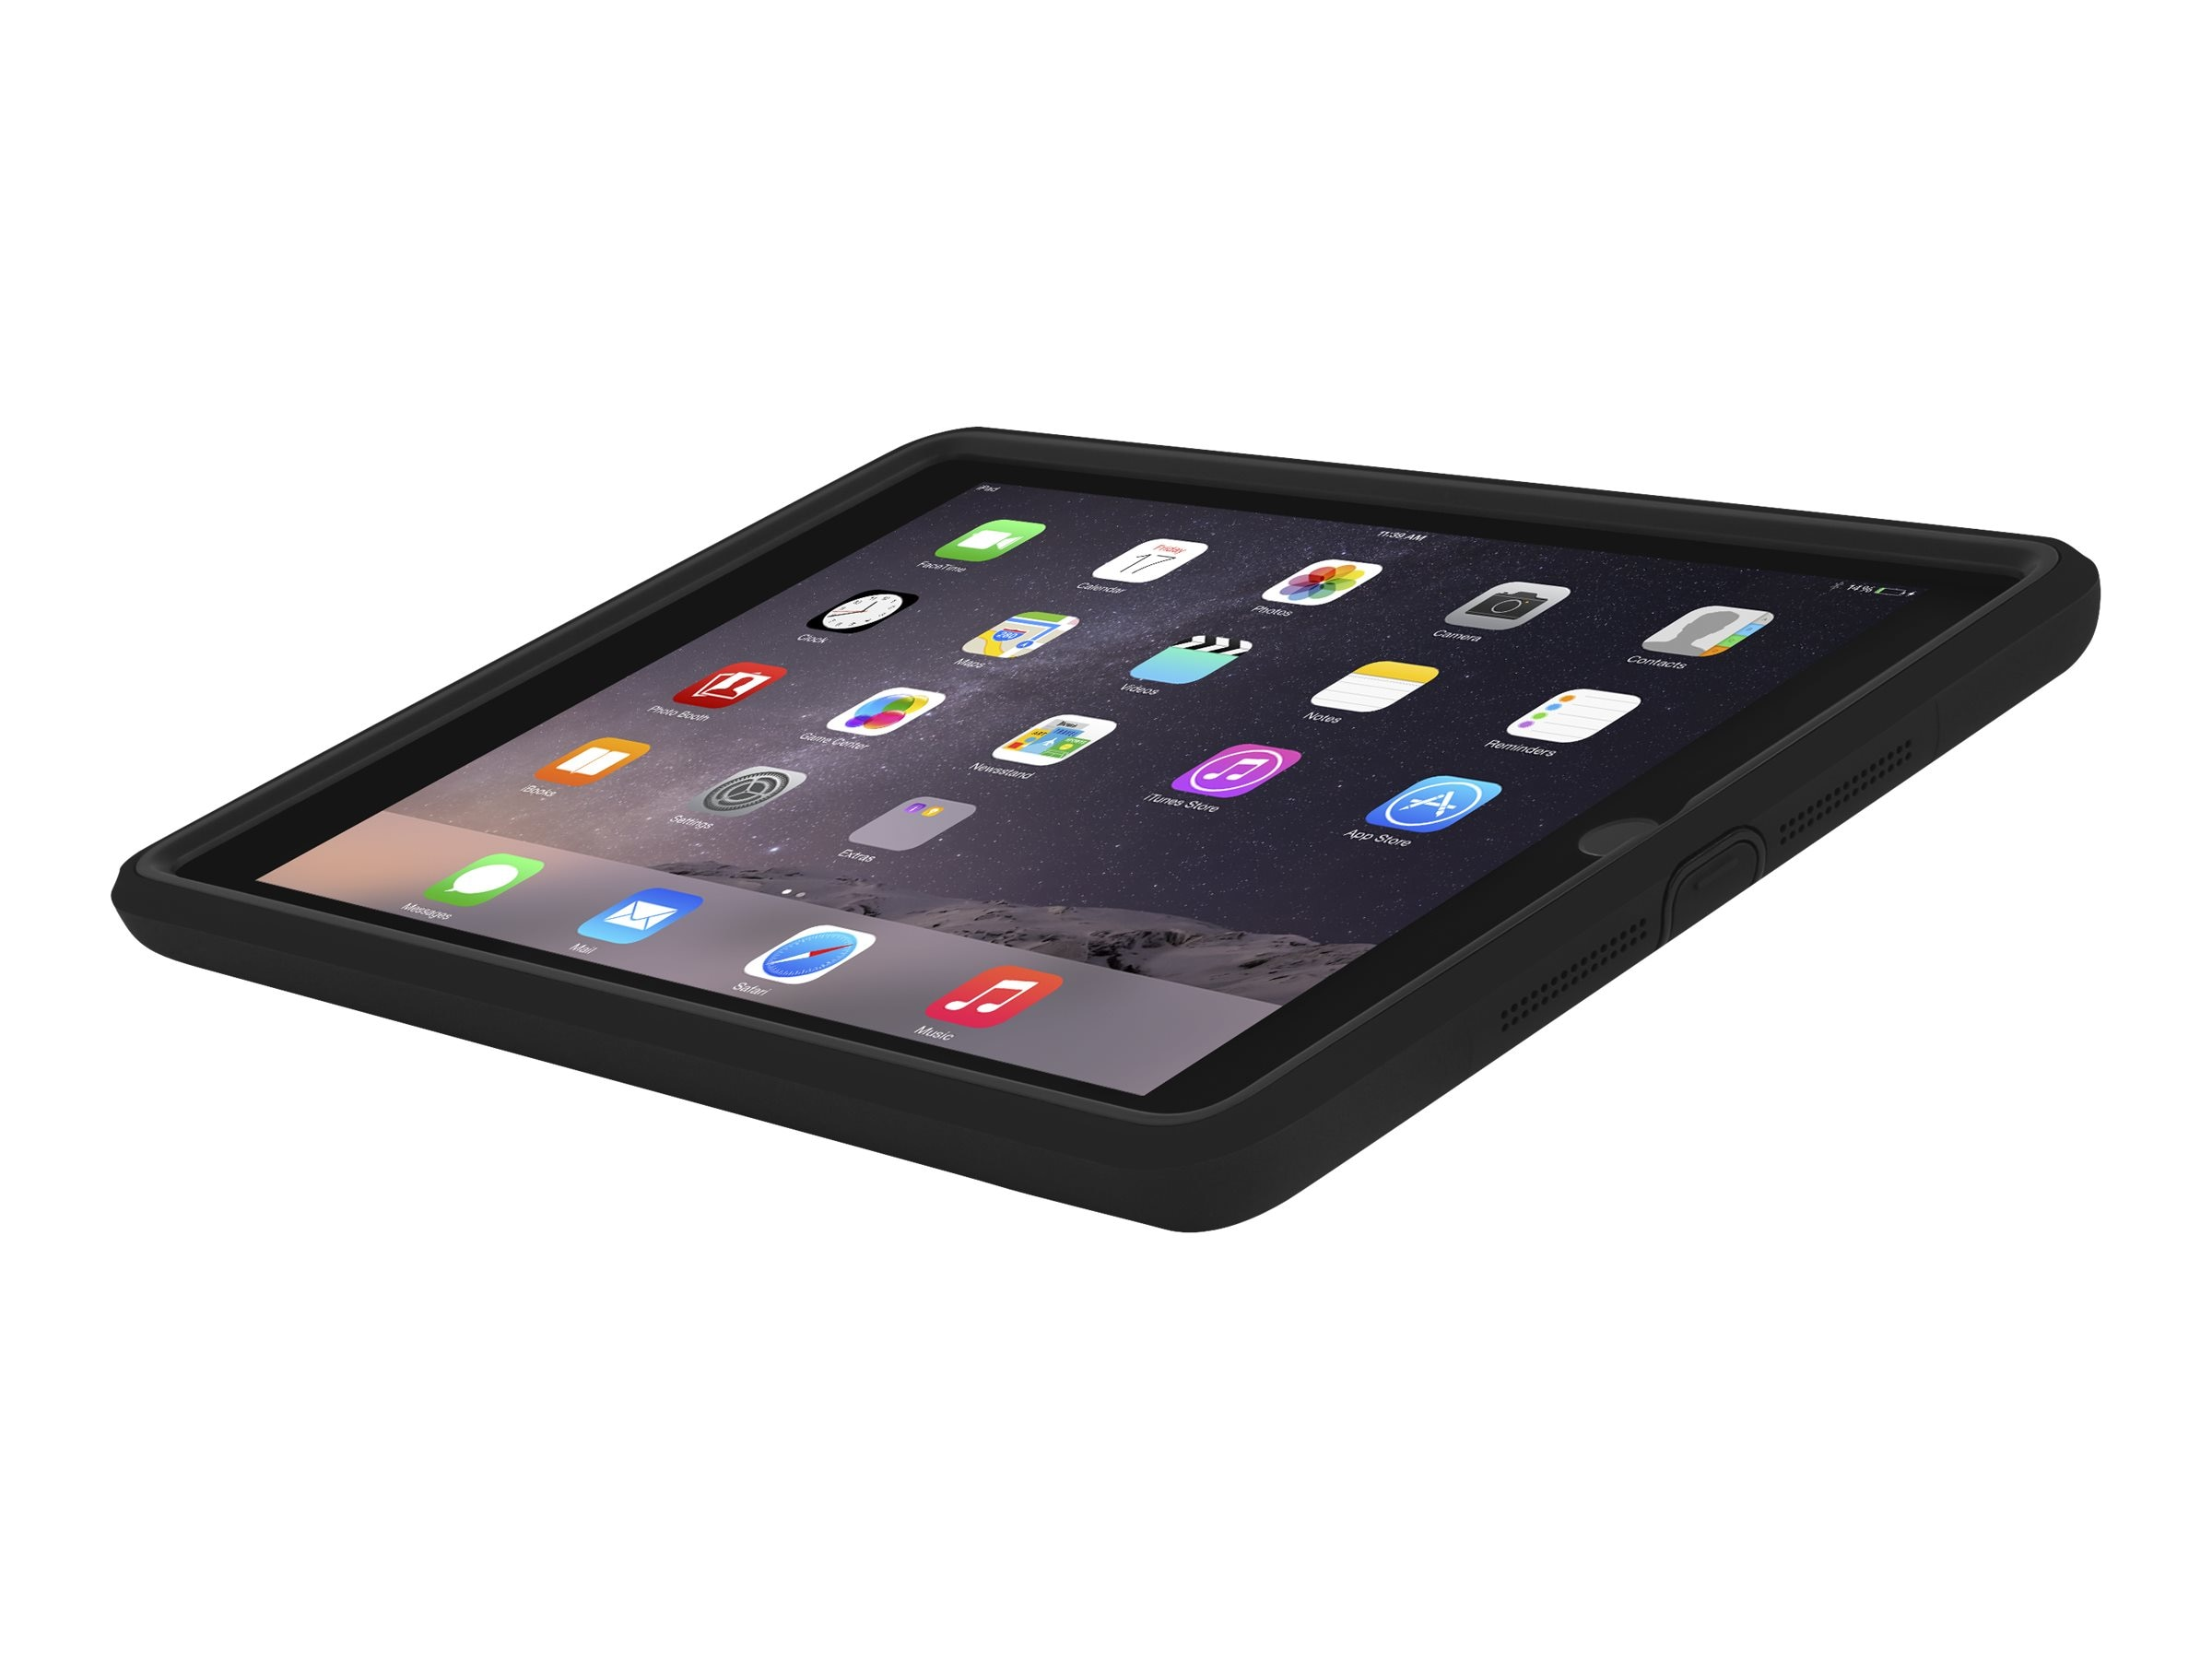 Incipio Capture Ultra-Rugged Case w  Rotating Hand Strap for iPad Air 2, IPD-261-BLK, 31204073, Carrying Cases - Tablets & eReaders